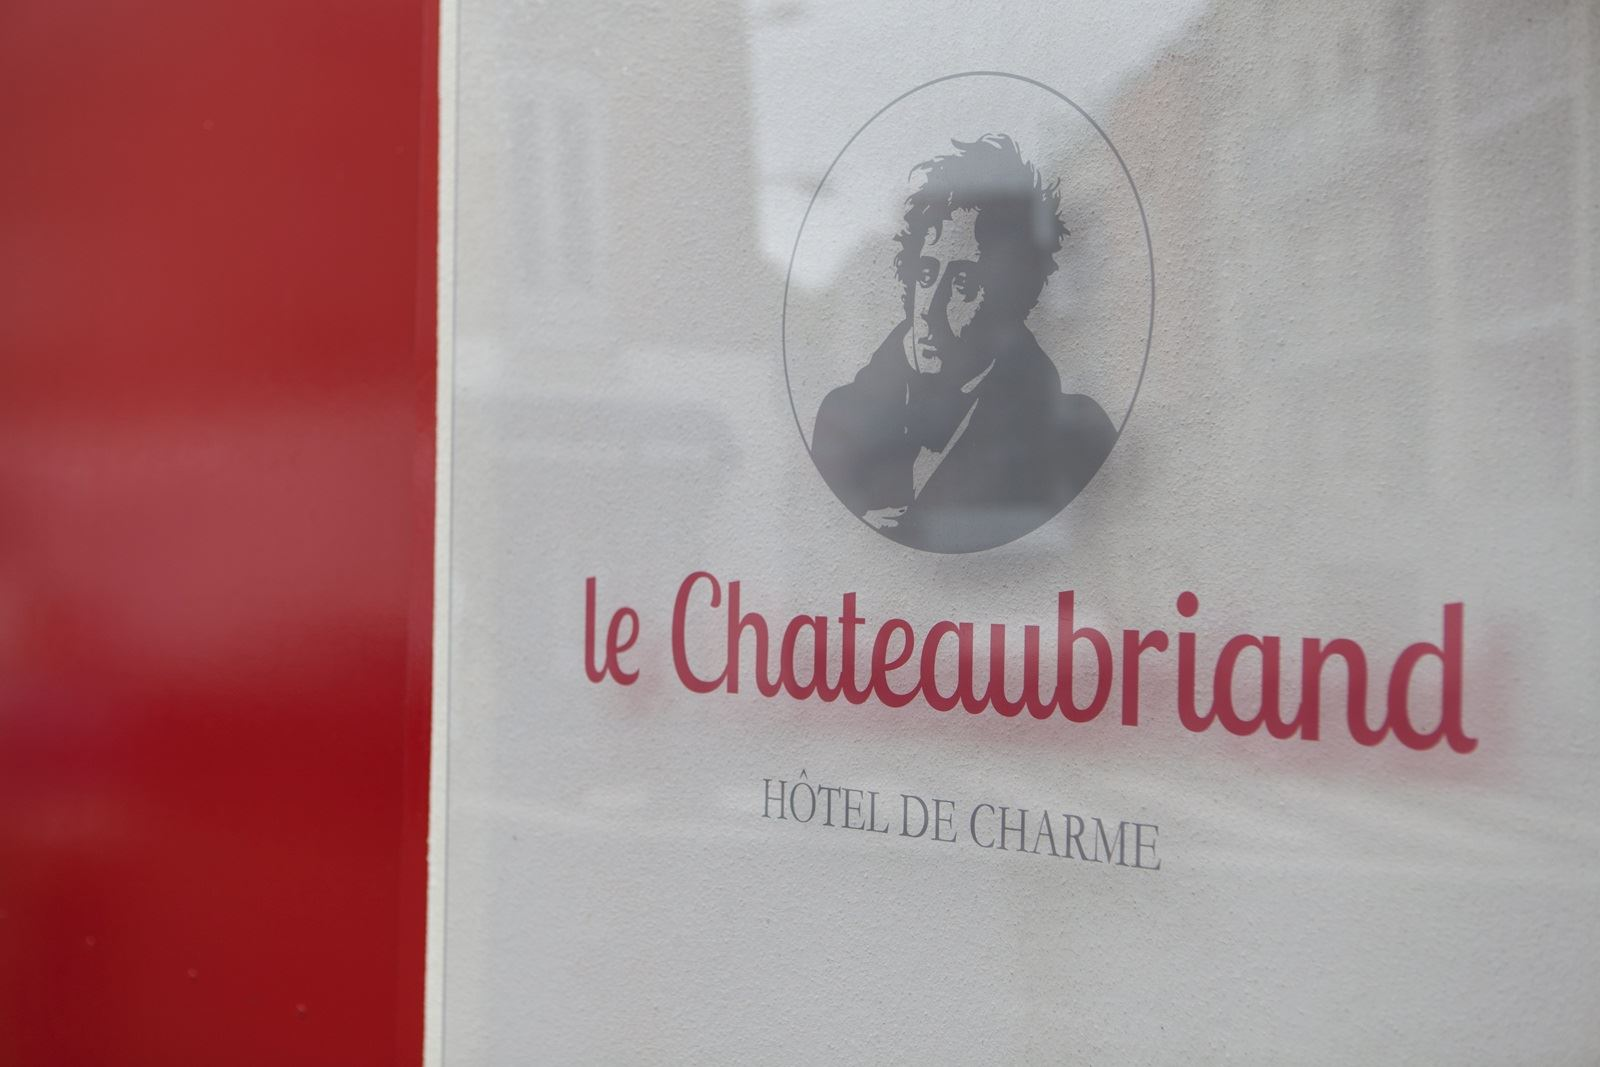 Hôtel Chateaubriand